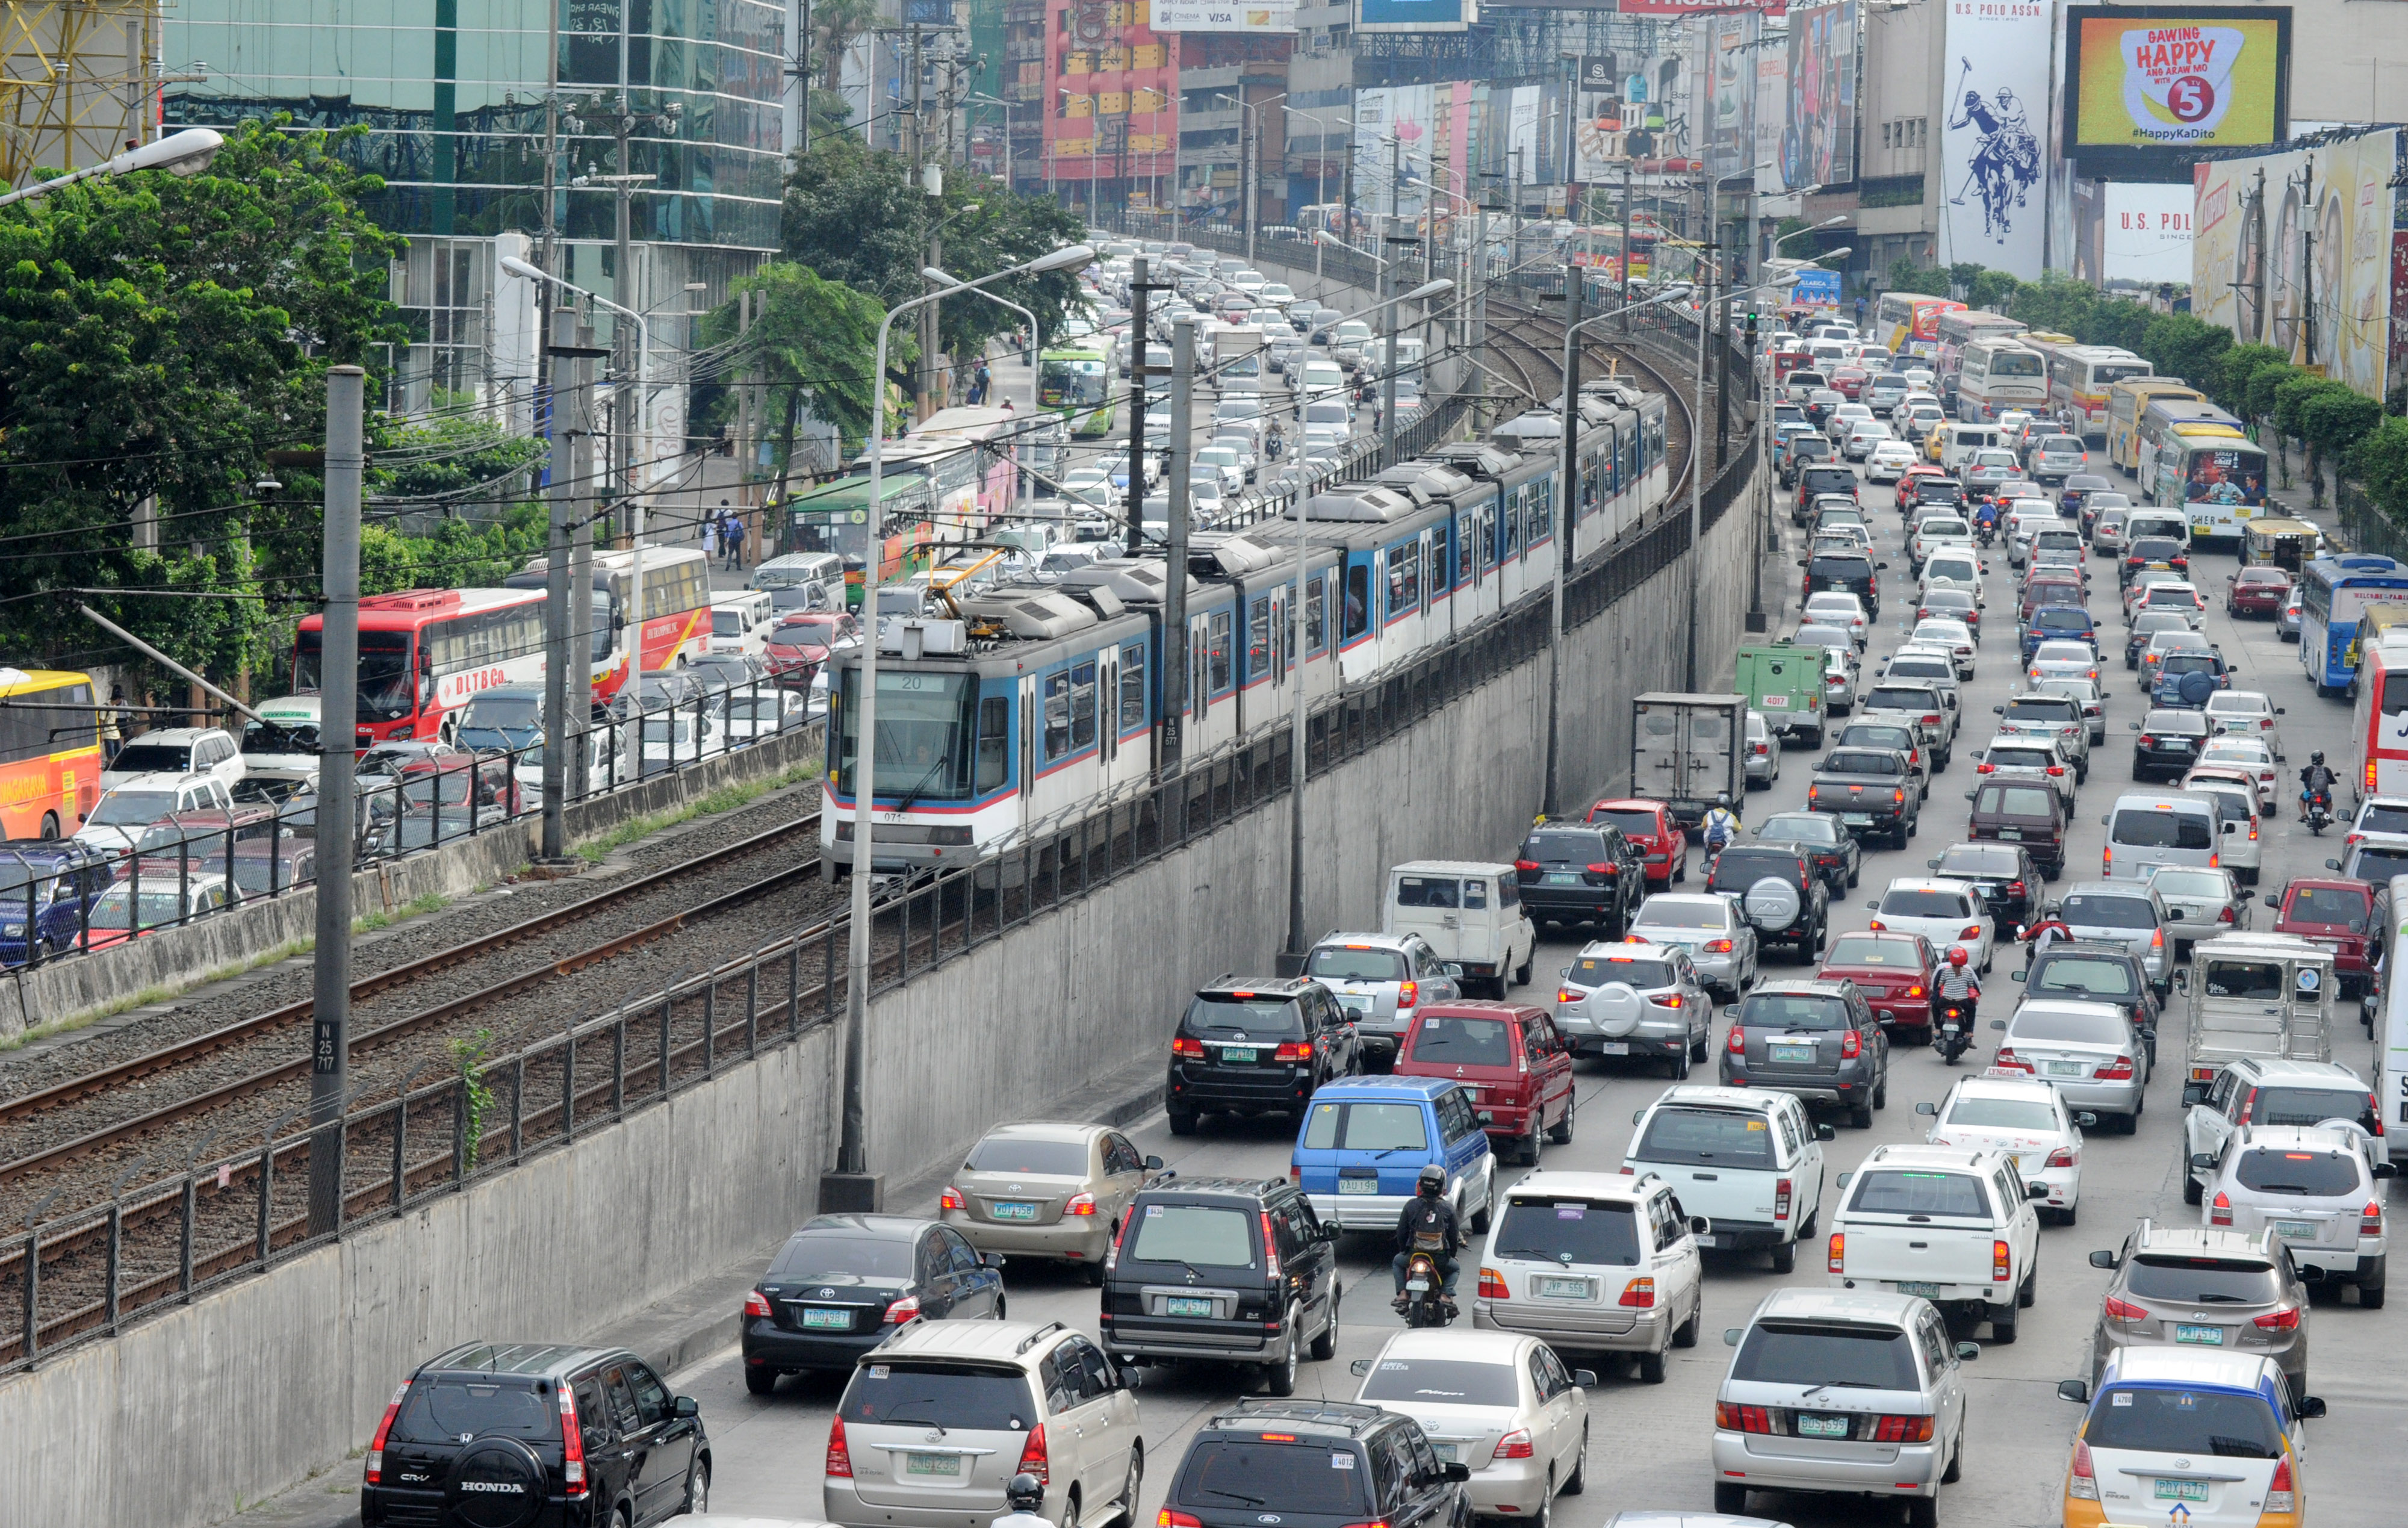 Bangalore and Manilla worlds worst cities for traffic